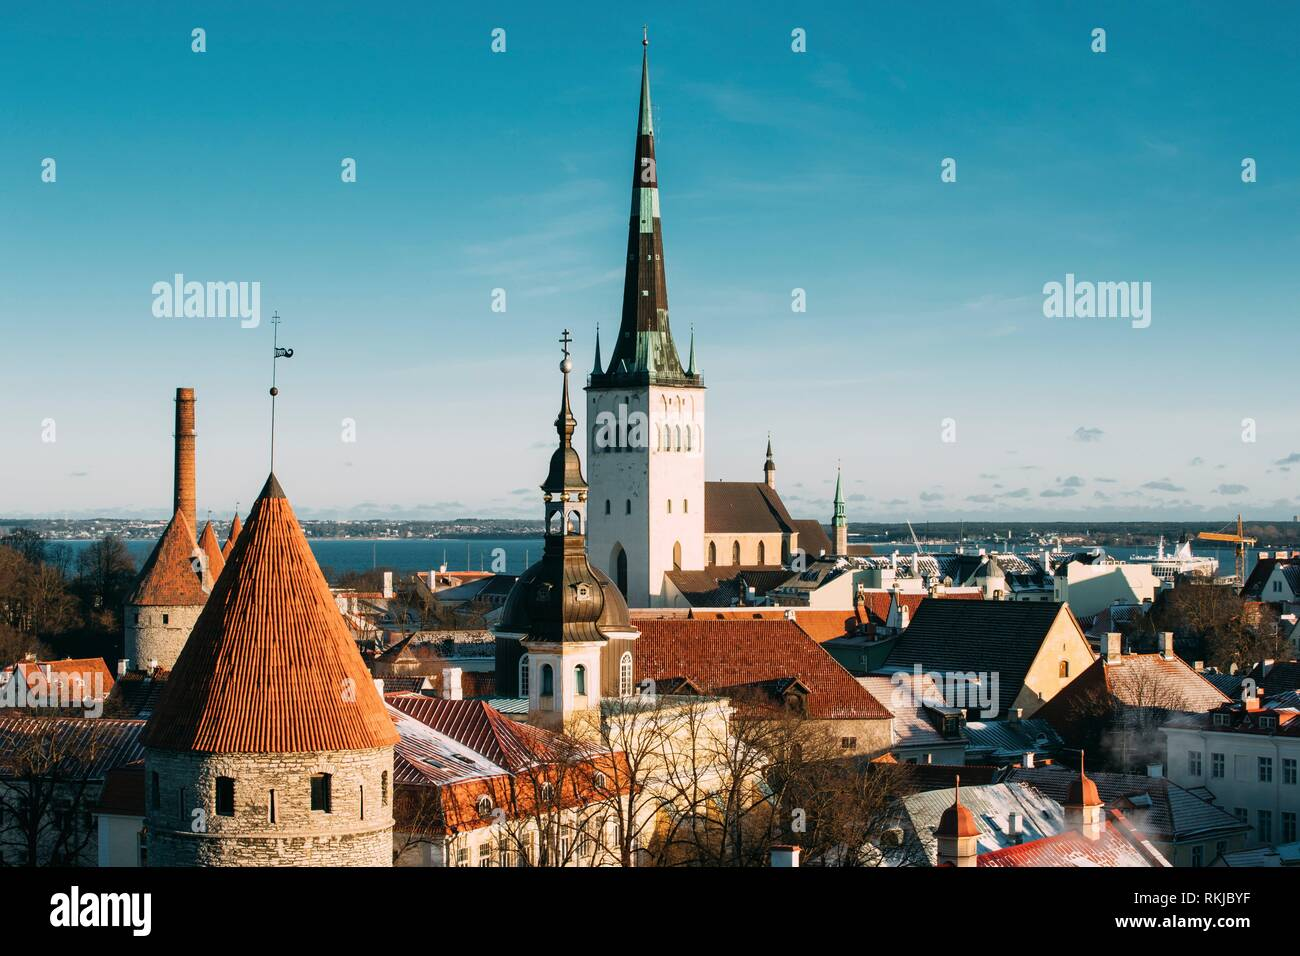 Tallinn, Estonia. Part Of Tallinn City Wall With Towers, At The Top Of Photo There Is Tower Of Church Of St. Olaf Or Olav. Popular Destination Scenic. - Stock Image